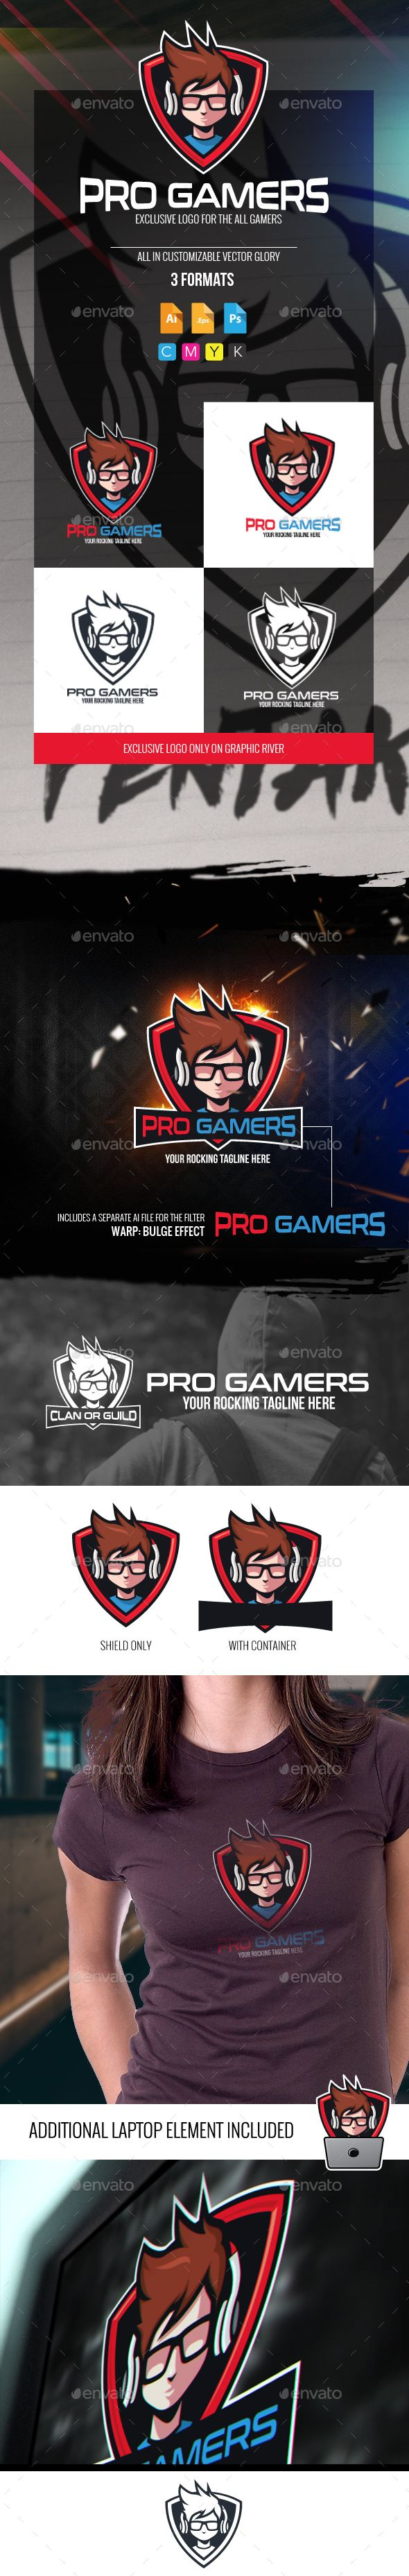 Pro Gamers Logo — Photoshop PSD #clan #cartoon • Available here → https://graphicriver.net/item/pro-gamers-logo/18876779?ref=pxcr